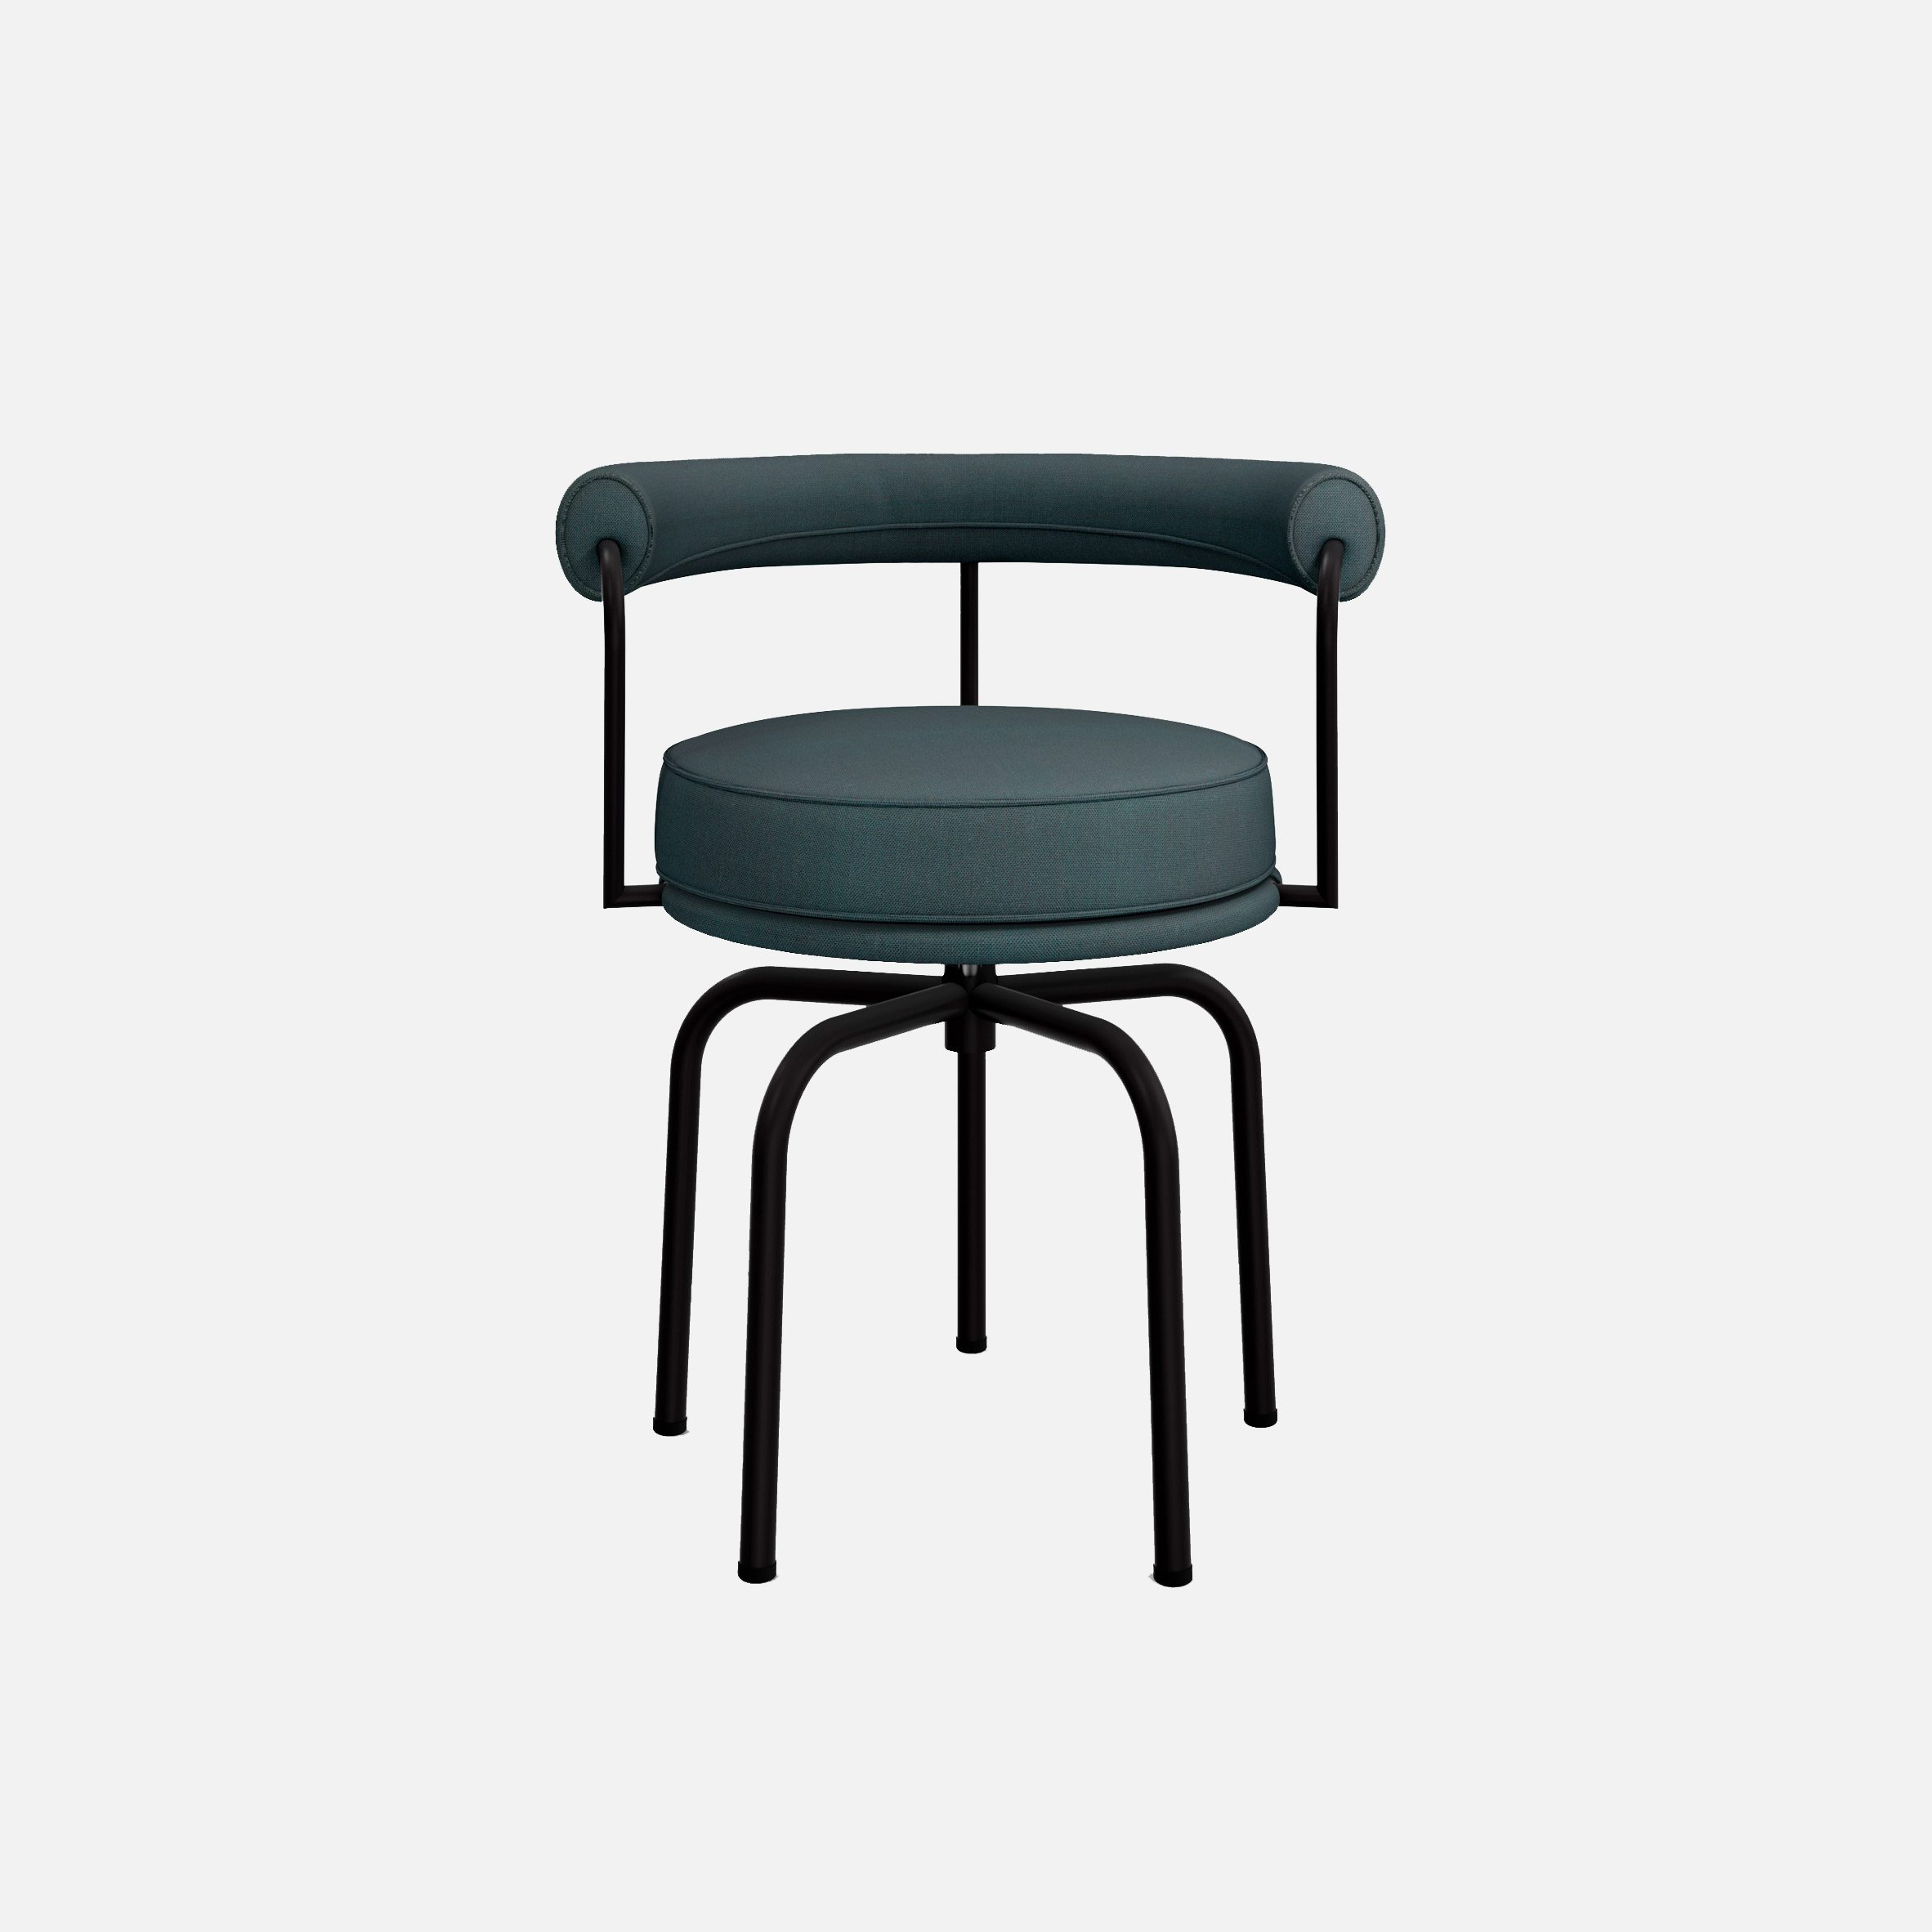 A photograph of a chair with legs made of tubular steel